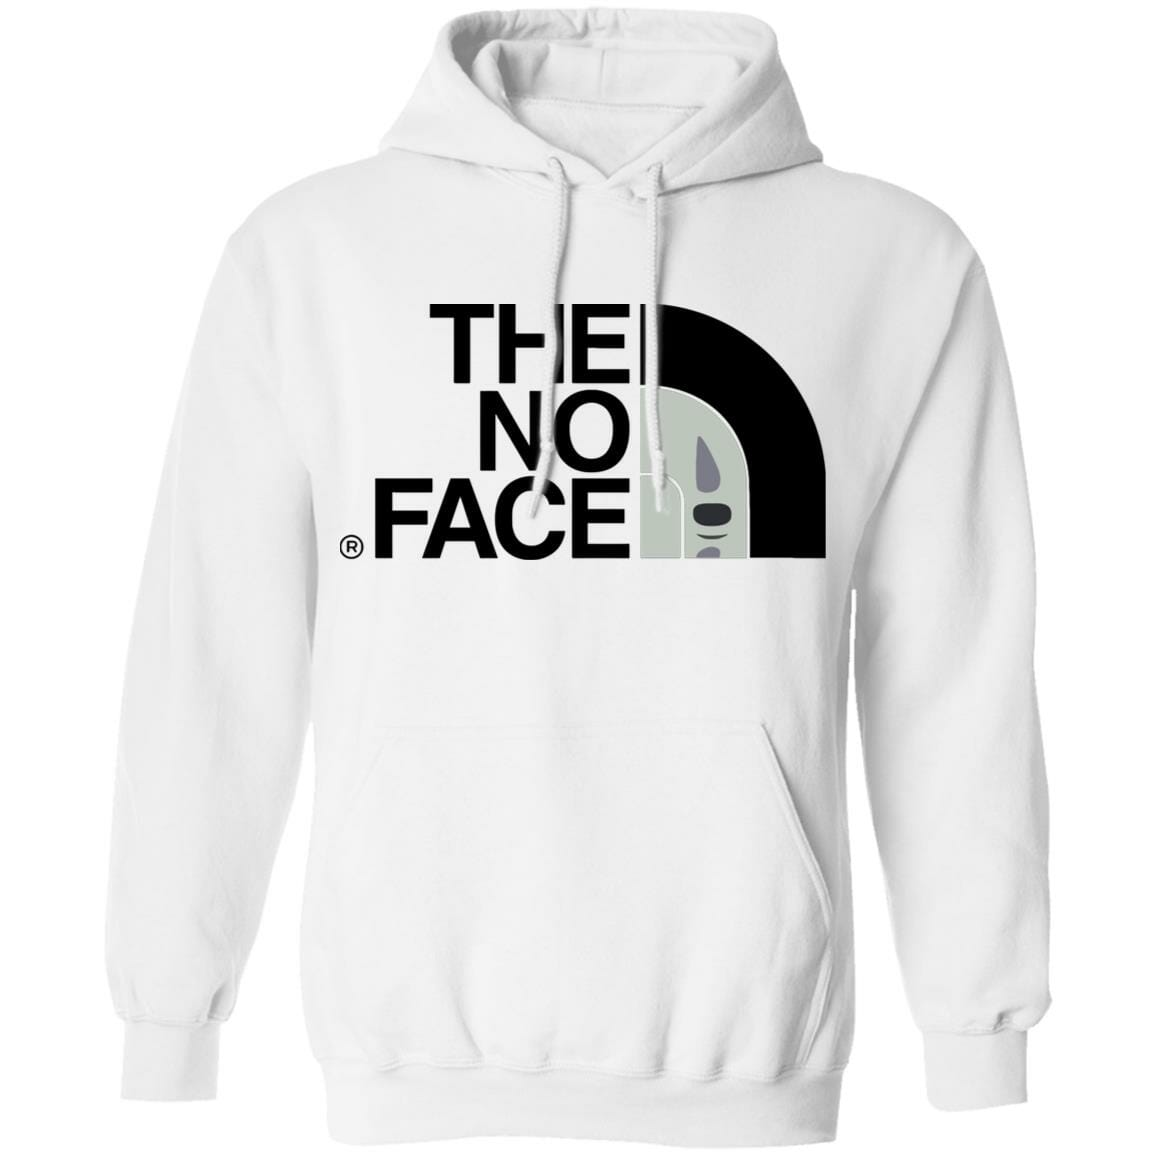 Spirited Away – The No Face Hoodie